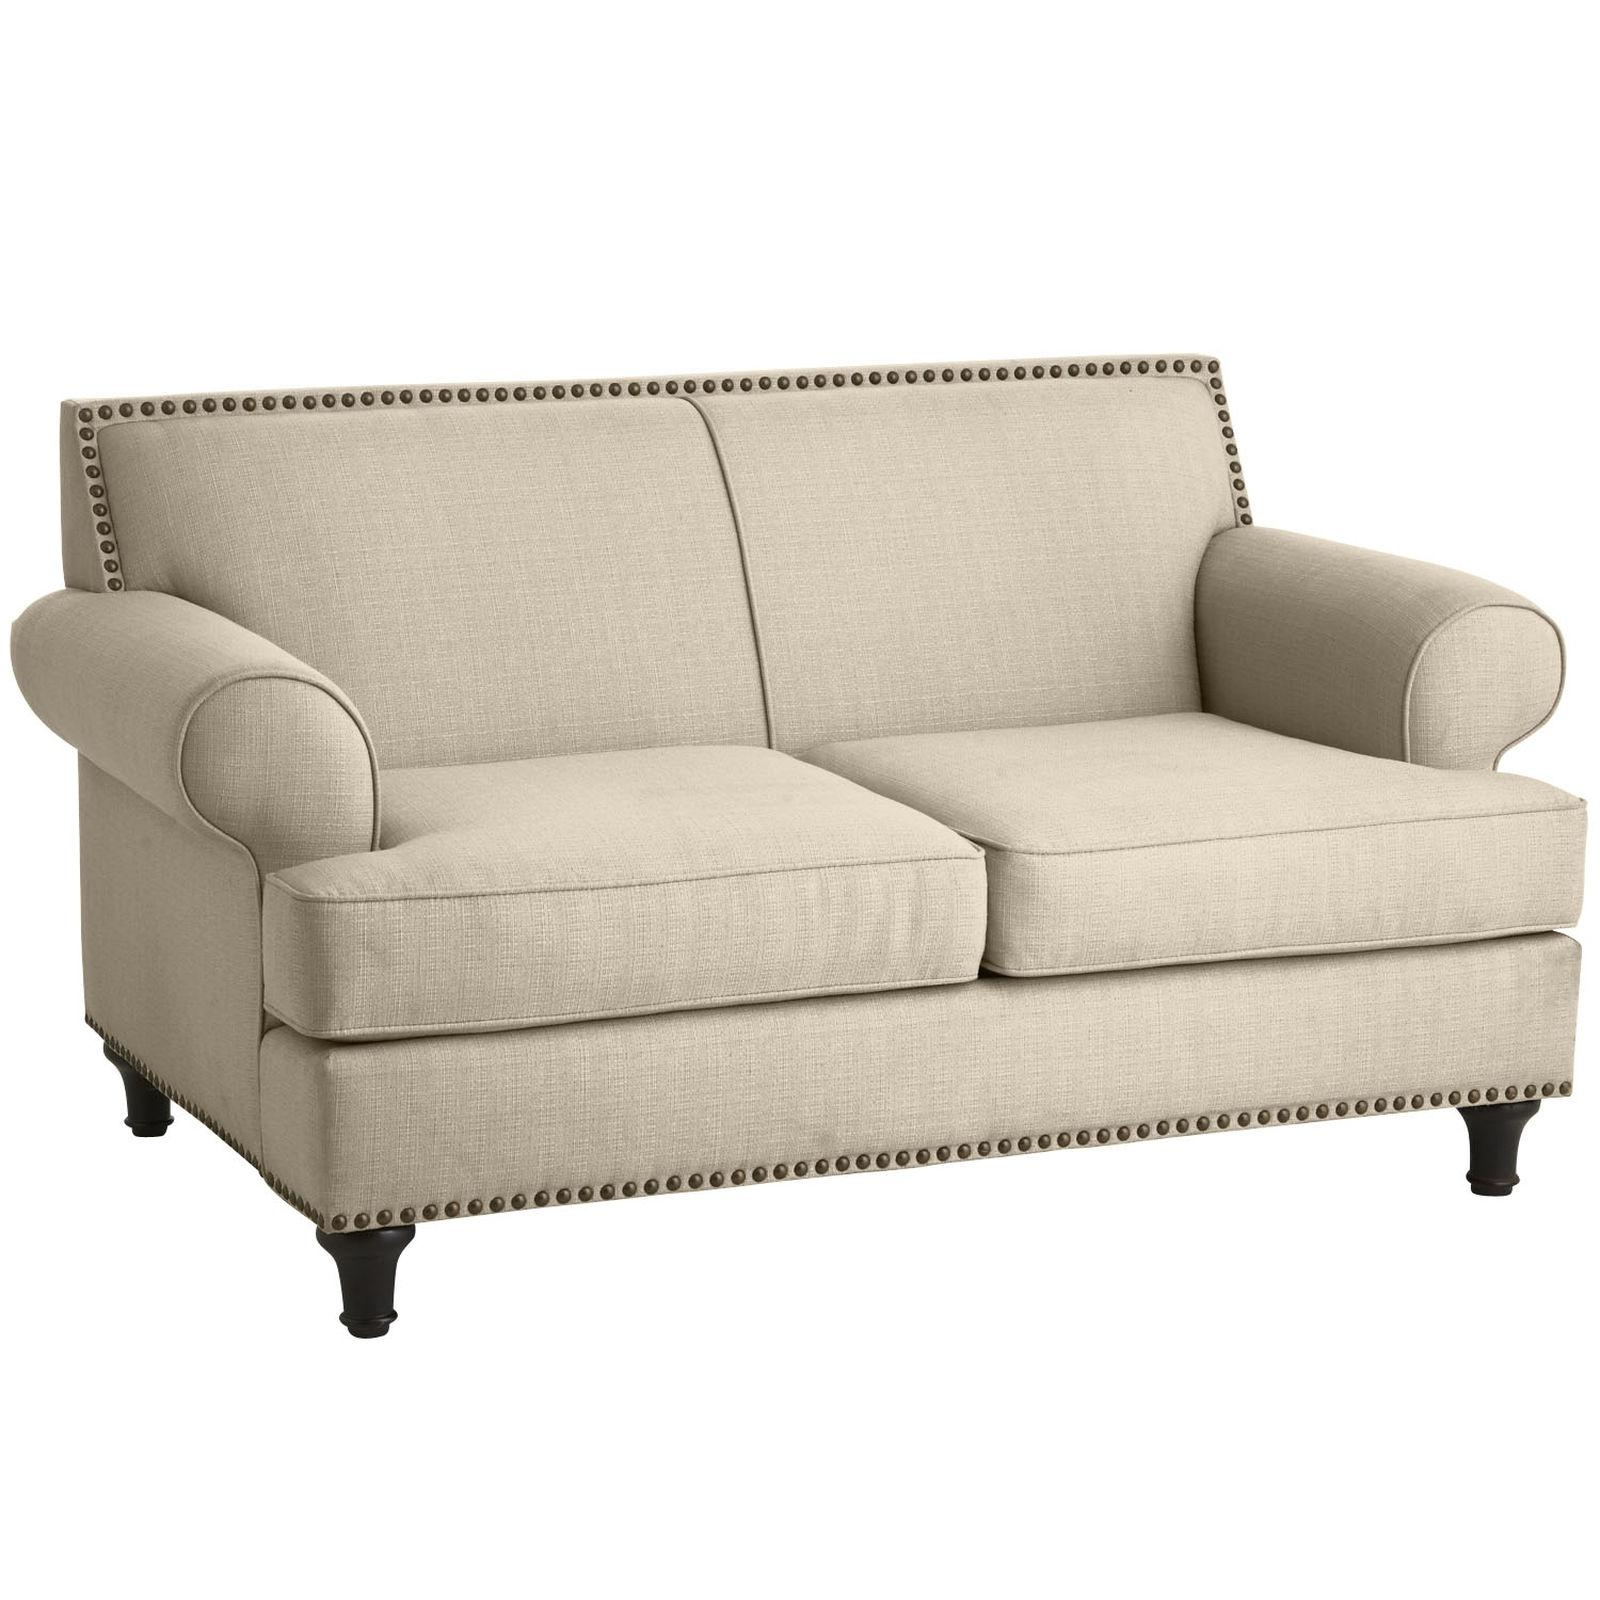 Furniture: Stunning Pier One Loveseat For Perfect Living Room within Pier 1 Sofa Beds